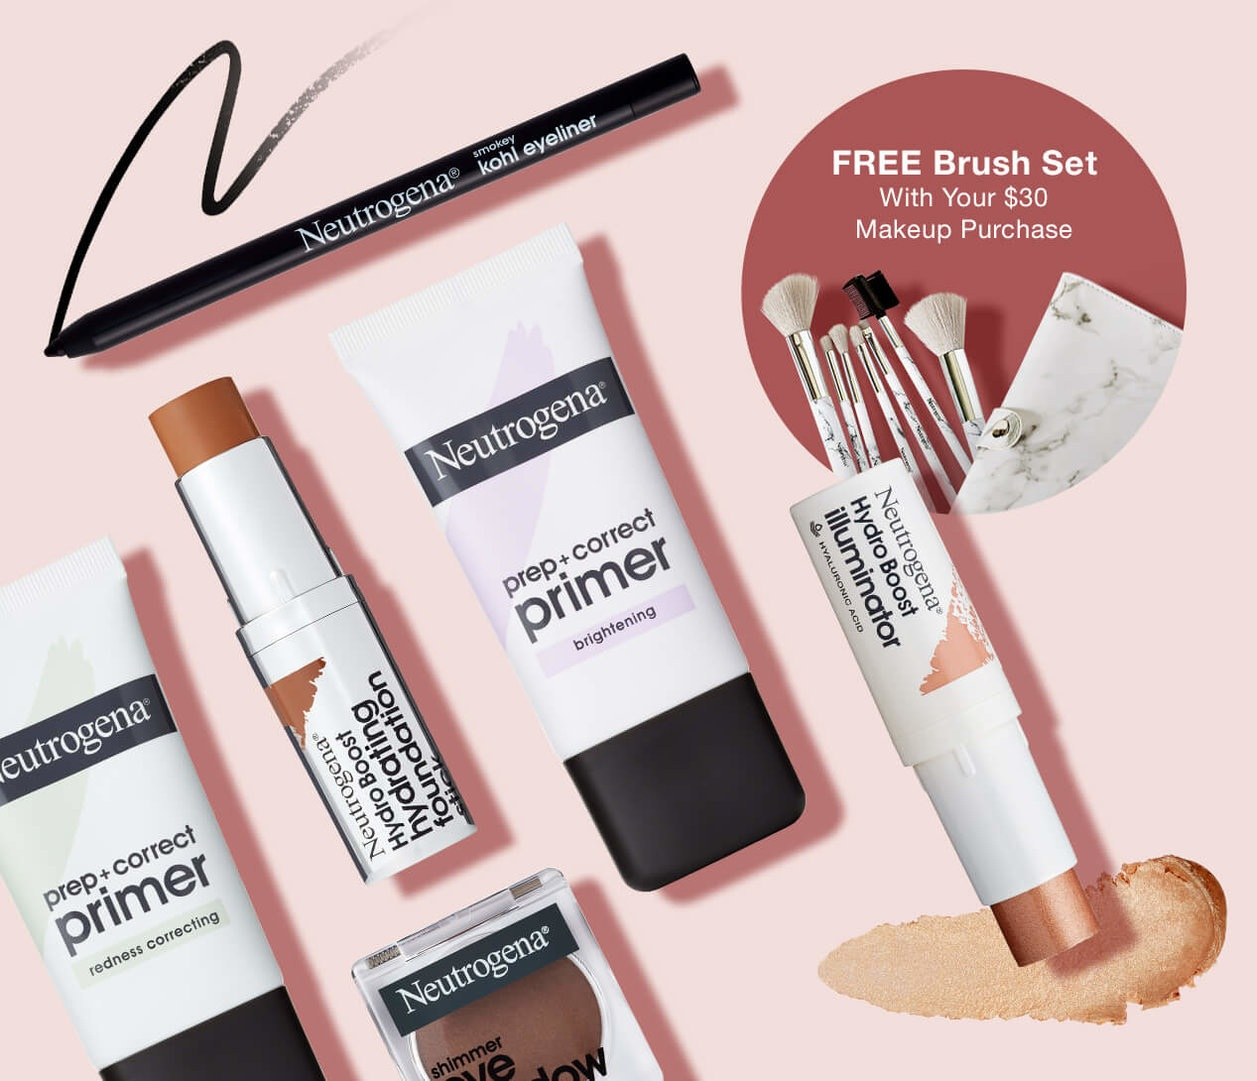 20190301-offers-page-makeup-30-GWP.jpg